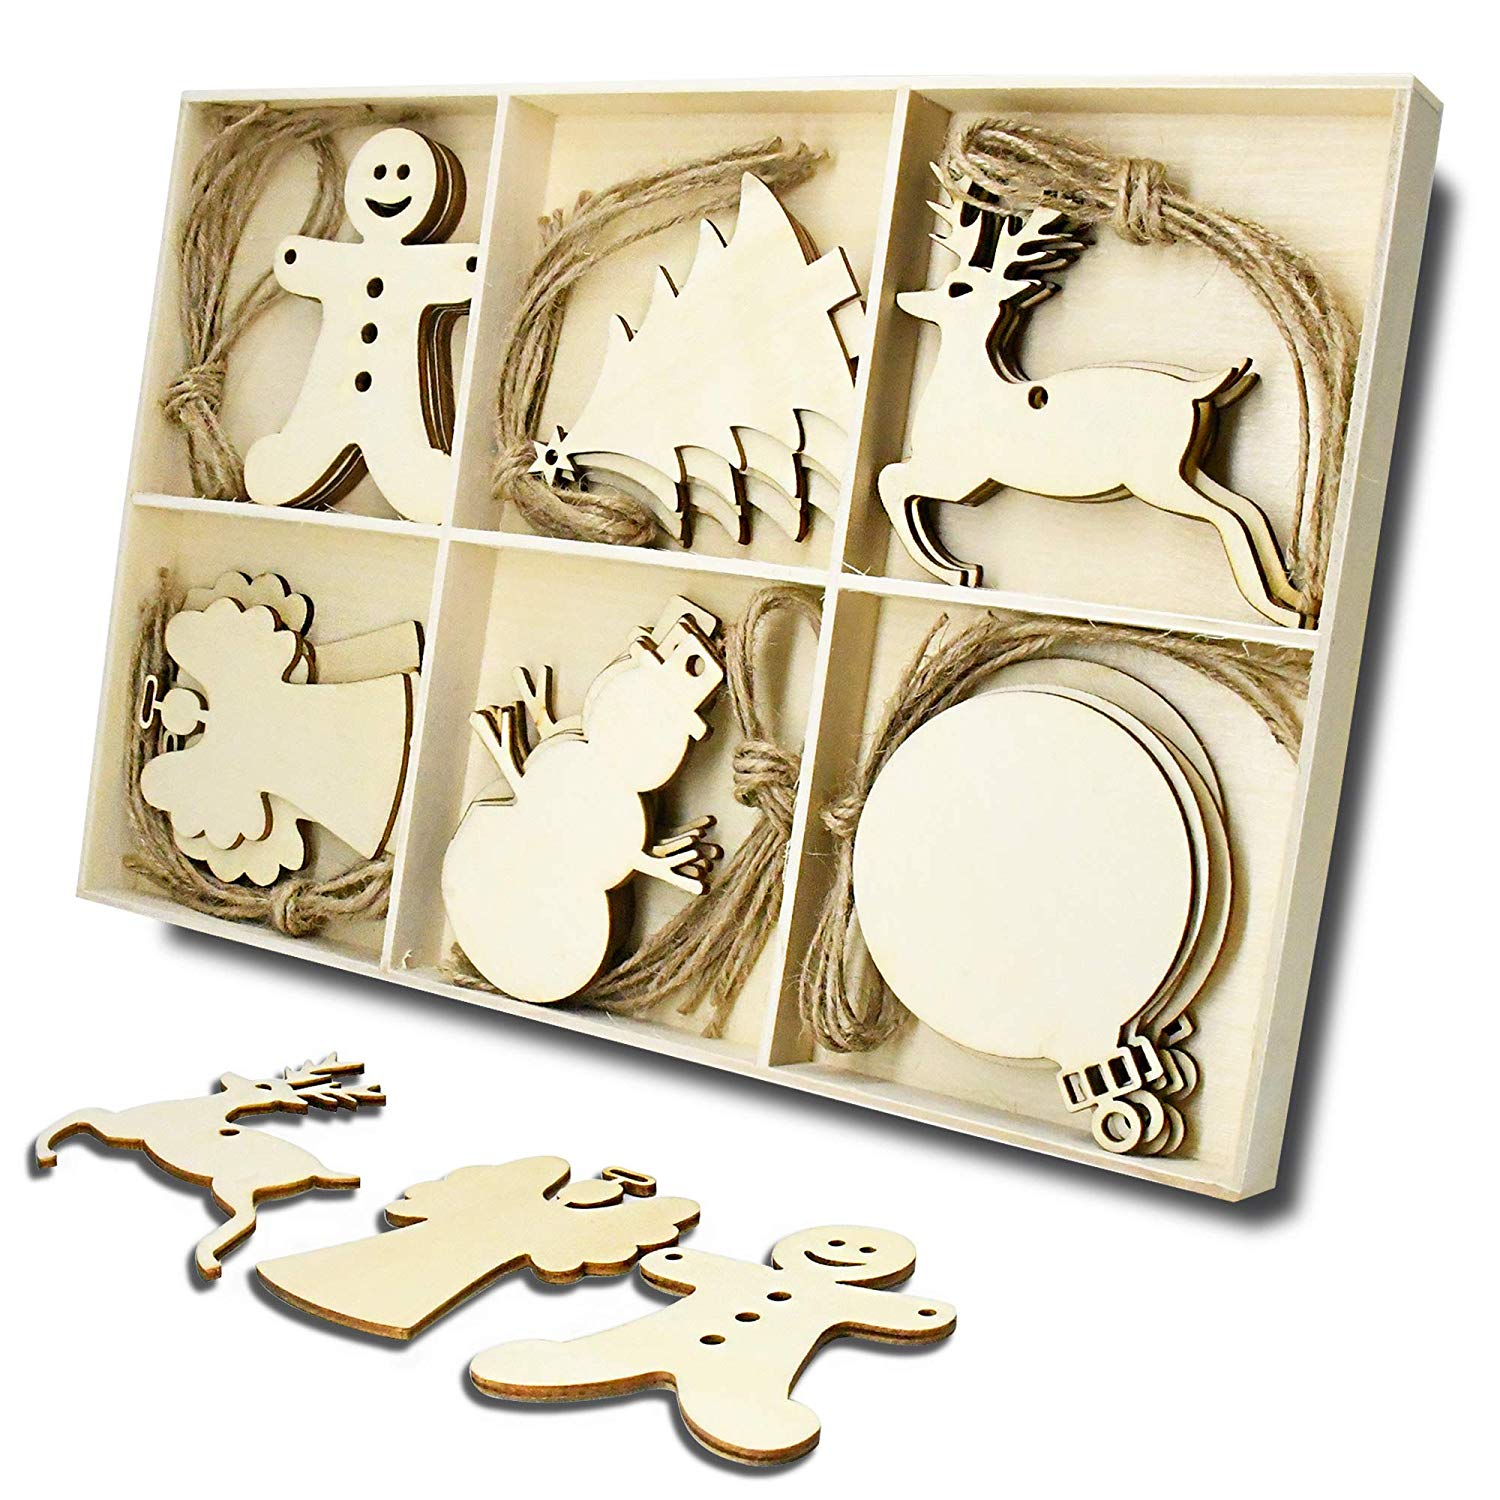 Wooden Christmas Tree and Snowman Shaped Embellishments Hanging Ornaments Decoration with Natural Twine (Each of 5)